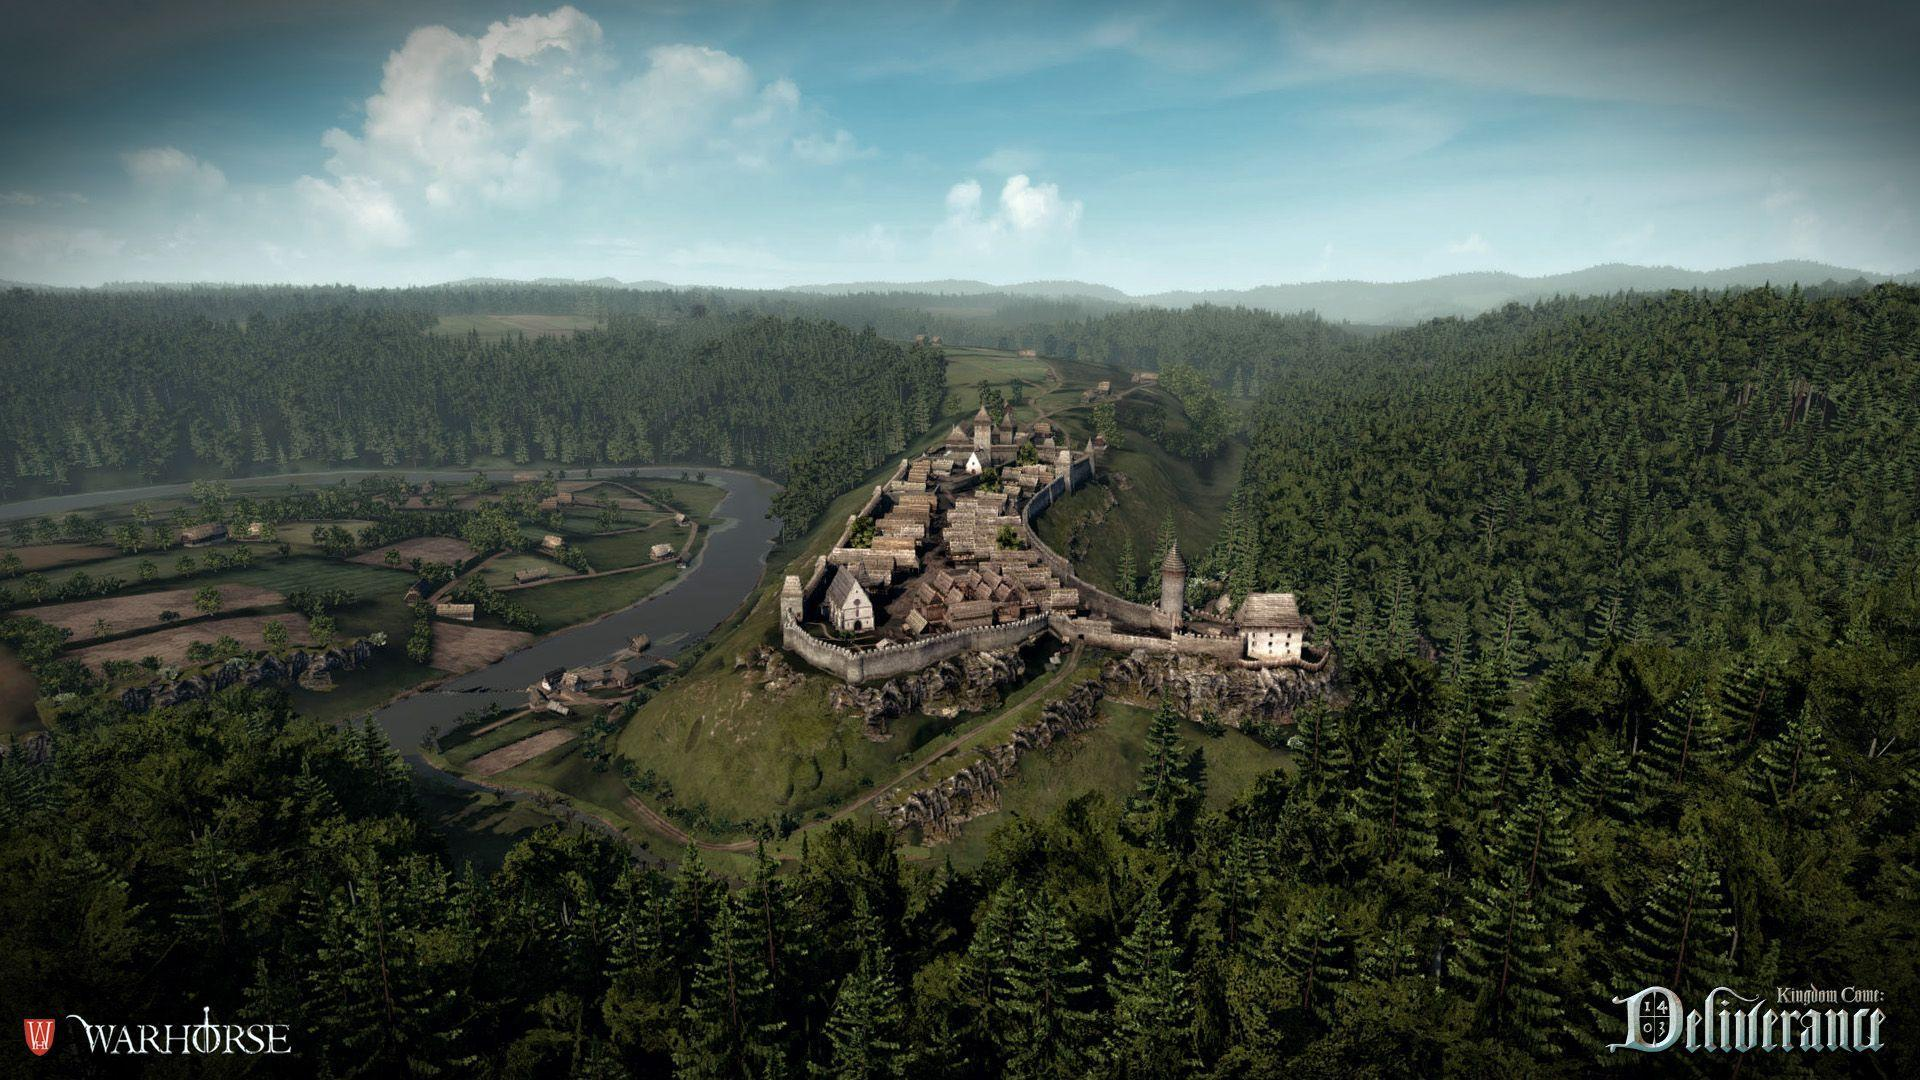 Pubg Real Life Hd Wallpaper: Kingdom Come: Deliverance Wallpapers Images Photos